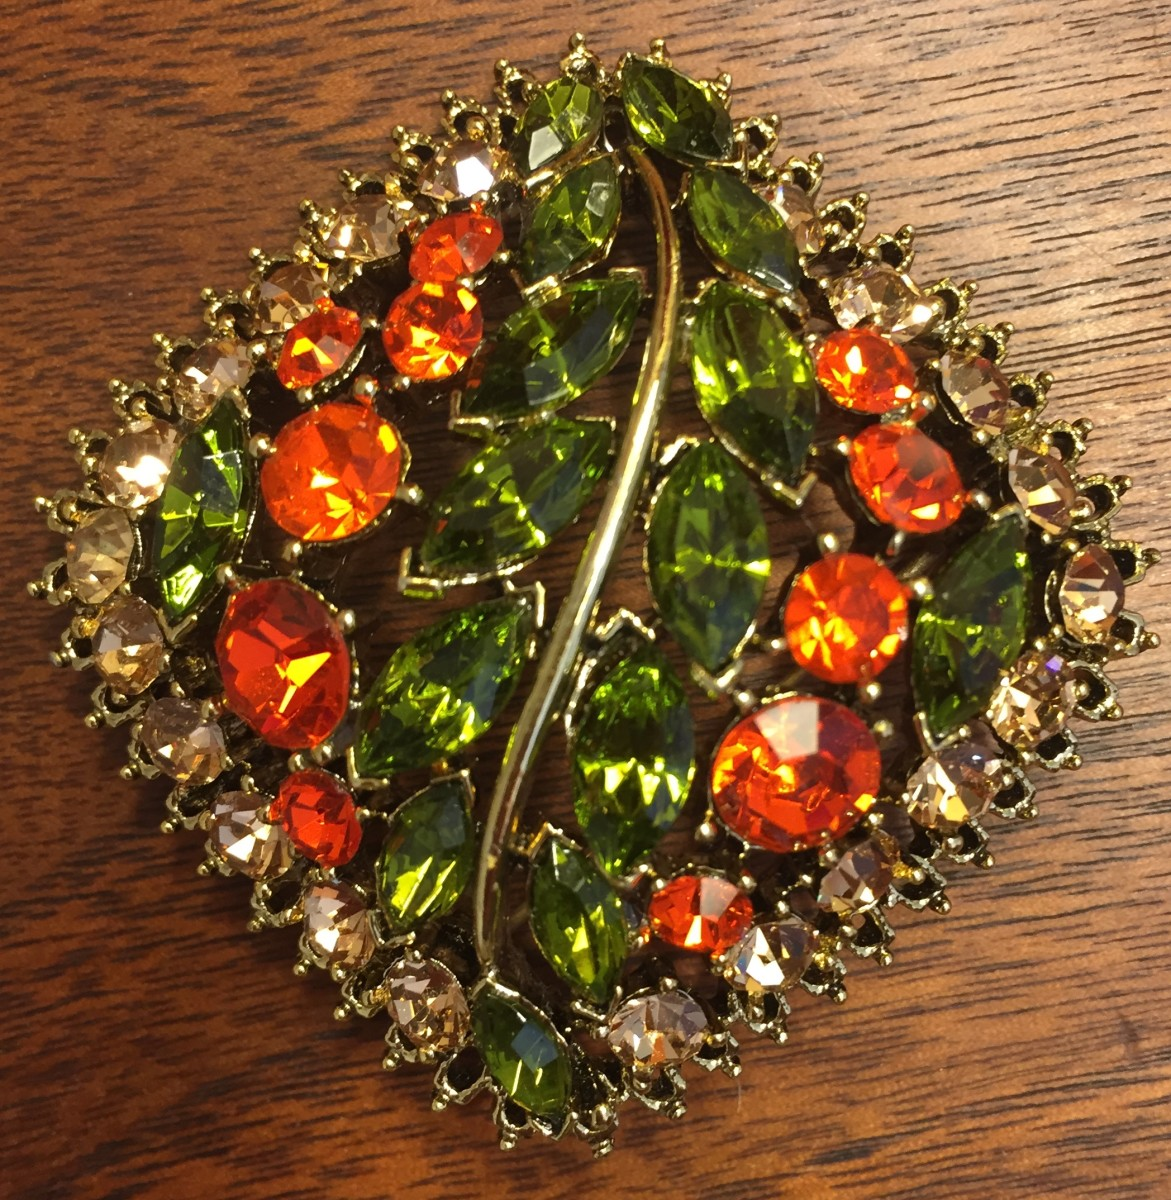 Treasure Hunt: Finding and Identifying Mid-Century Costume Jewelry